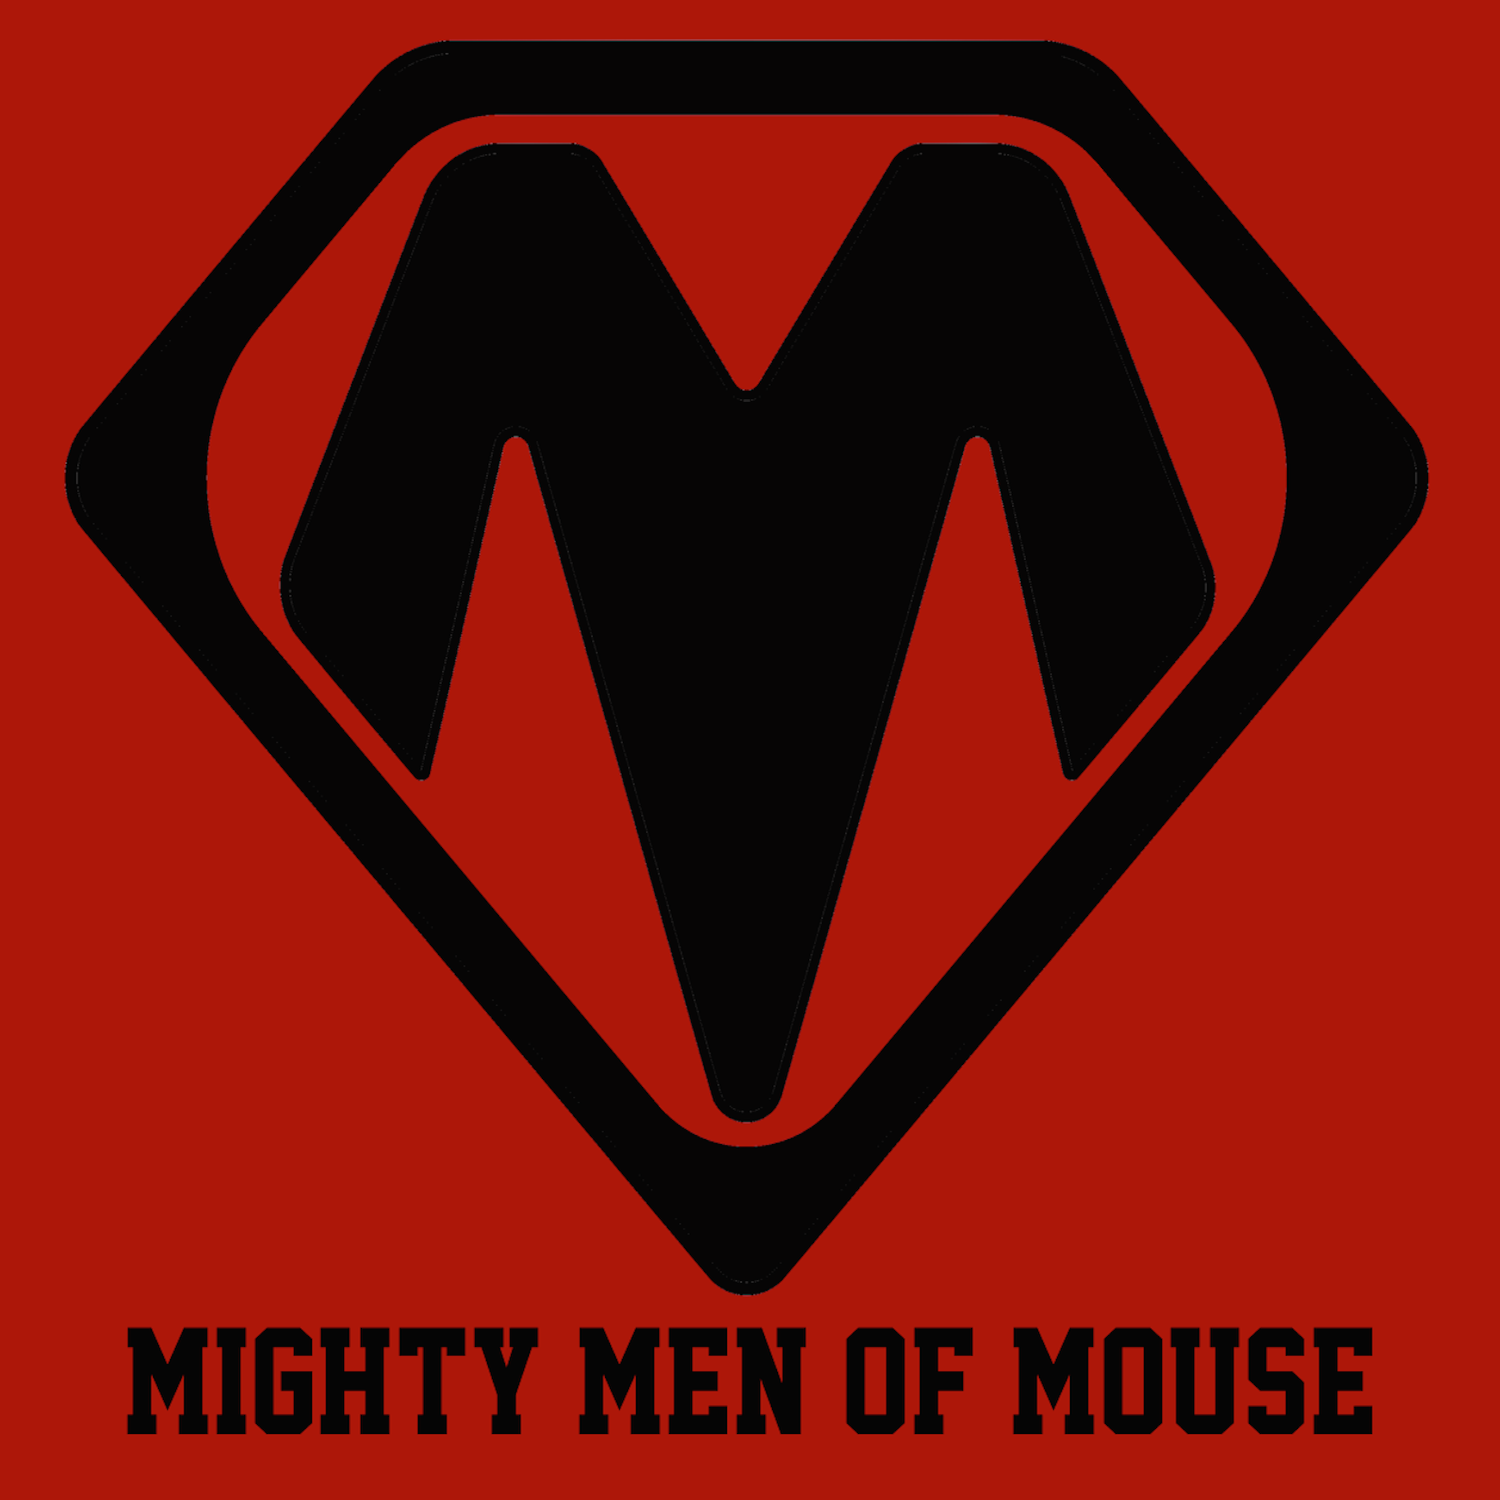 Mighty Men of Mouse: Episode 0399 -- Buy My Seat show art